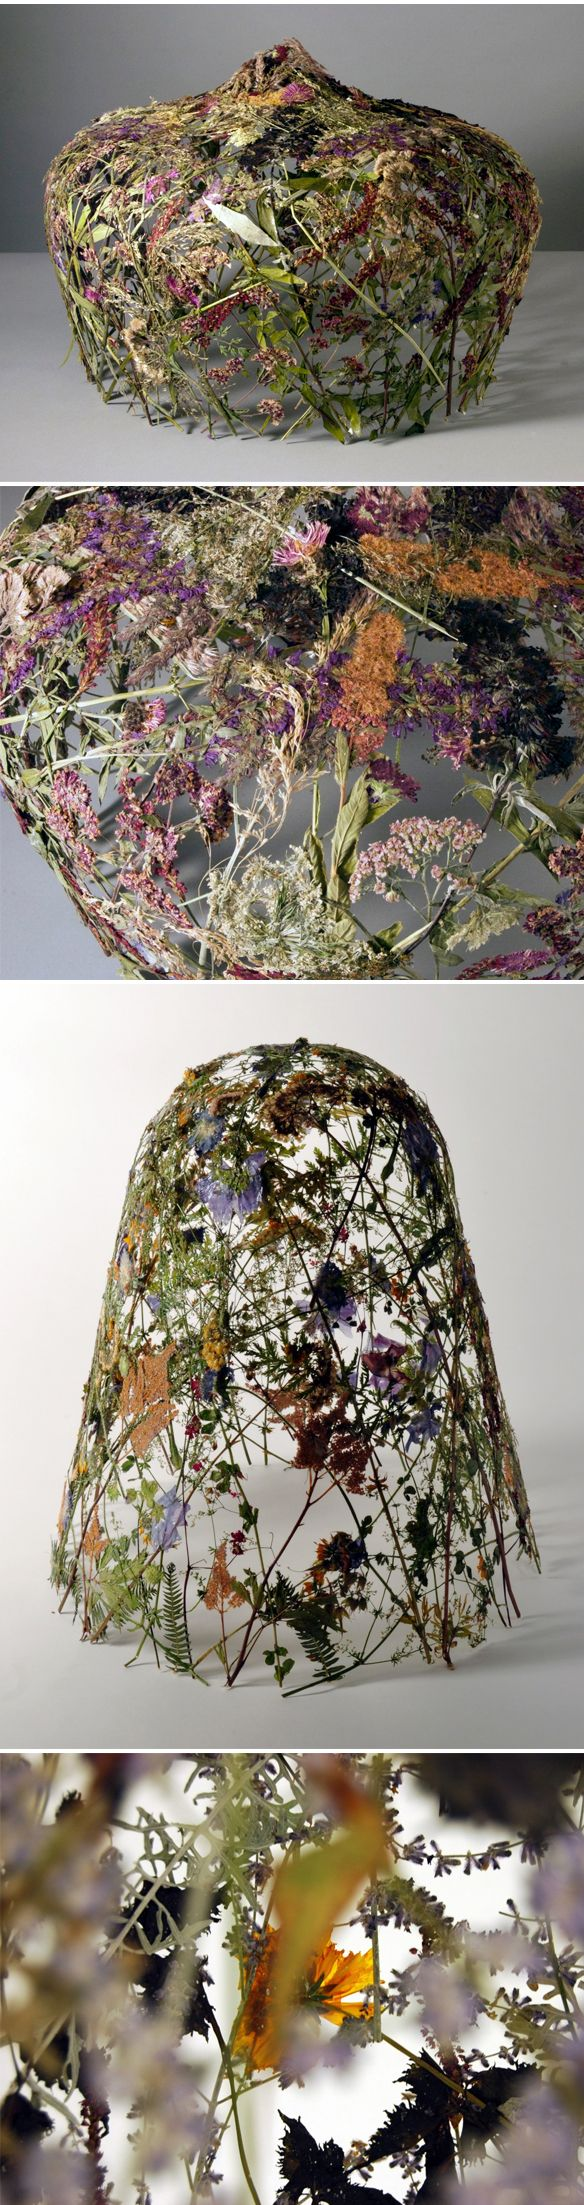 "Ignacio Canales Aracil | ""Pressed flowers. Just flowers. Spanish artist Ignacio Canales Aracil collects flowers from the private gardens of the most renowned landscape designers in Europe and then presses them into large molds. He gets no help from adhesives… just a month long drying process and the loving, miraculous touch of mother nature. When they're complete he adds a spray of light varnish to protect them from moisture. So amazing… delicate and stunningly beautiful."""